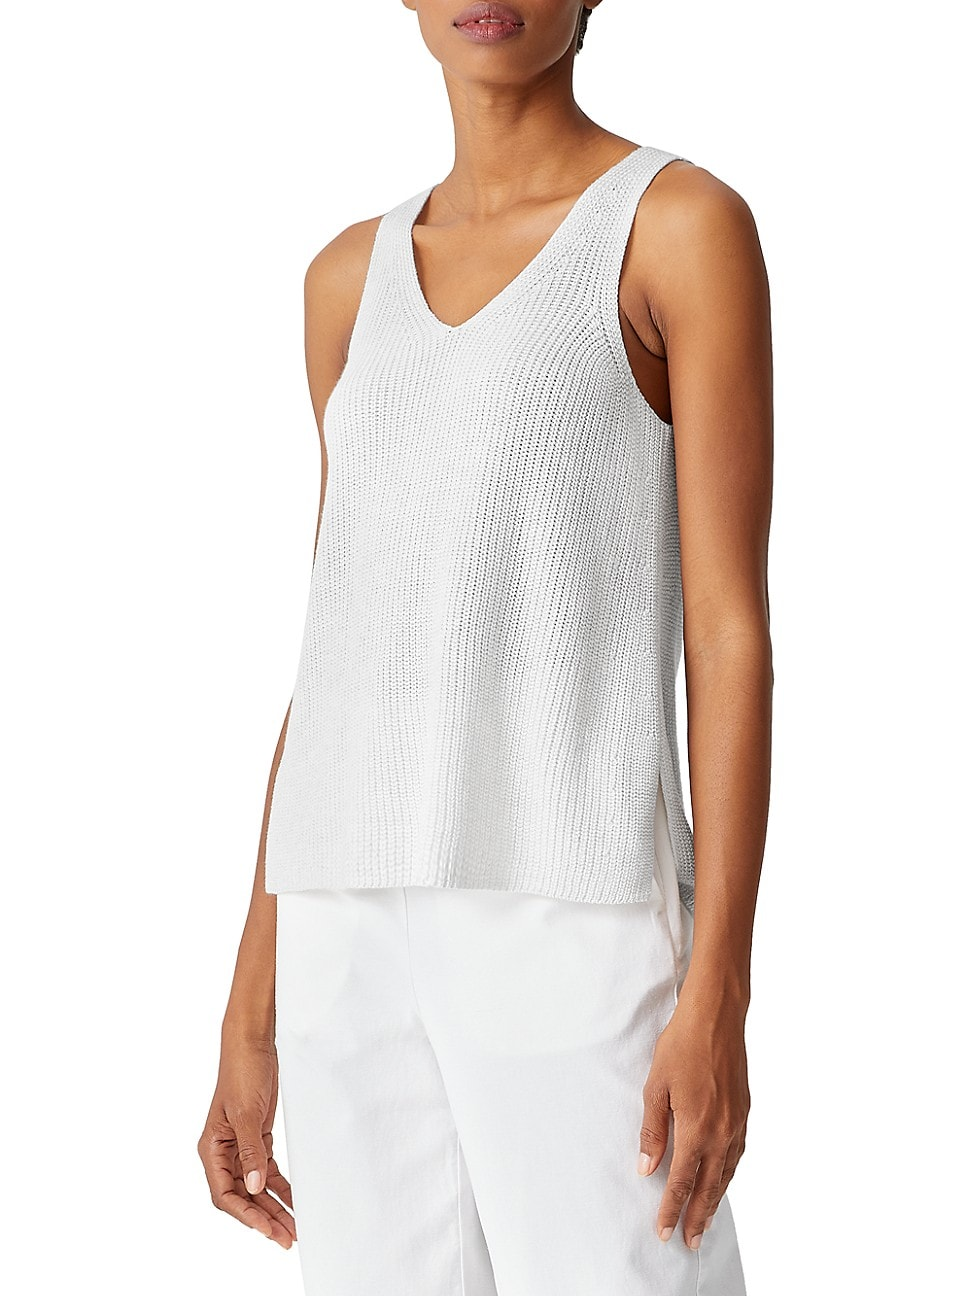 Eileen Fisher WOMEN'S KNIT V-NECK SHELL TOP